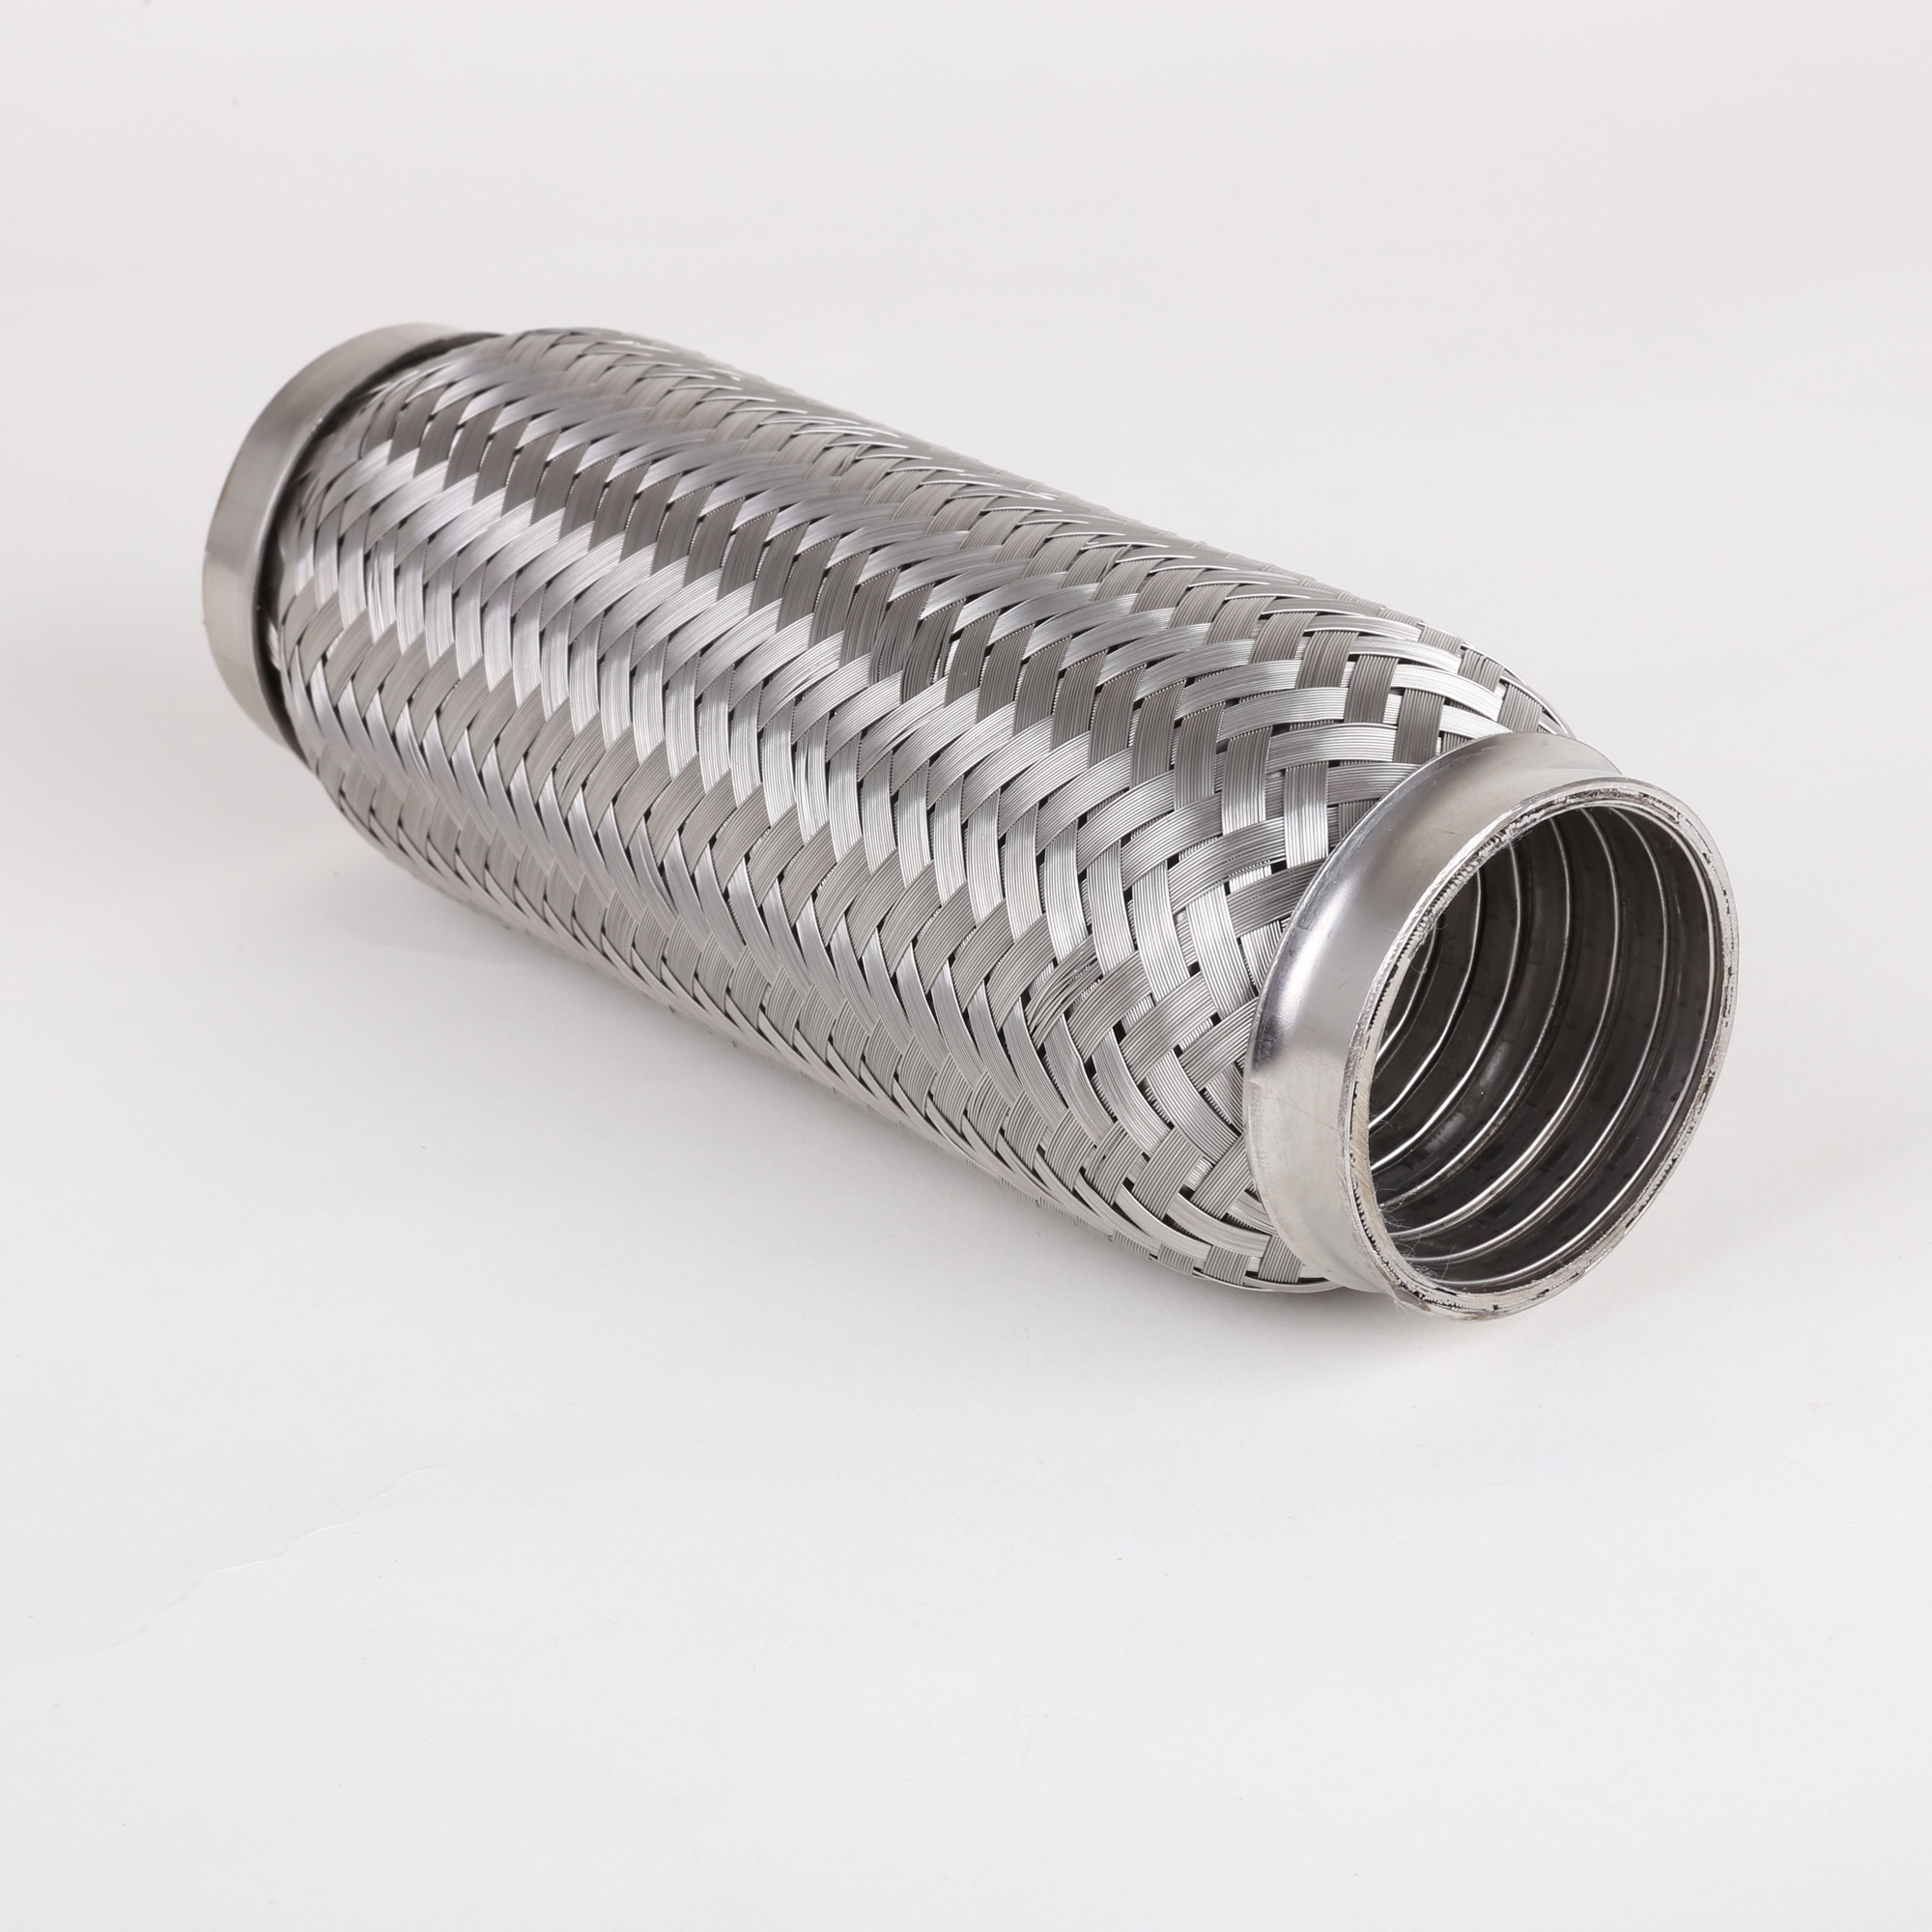 304 Stainless Steel high temperature Corrugated Braided Metal Flexible Hose Factory